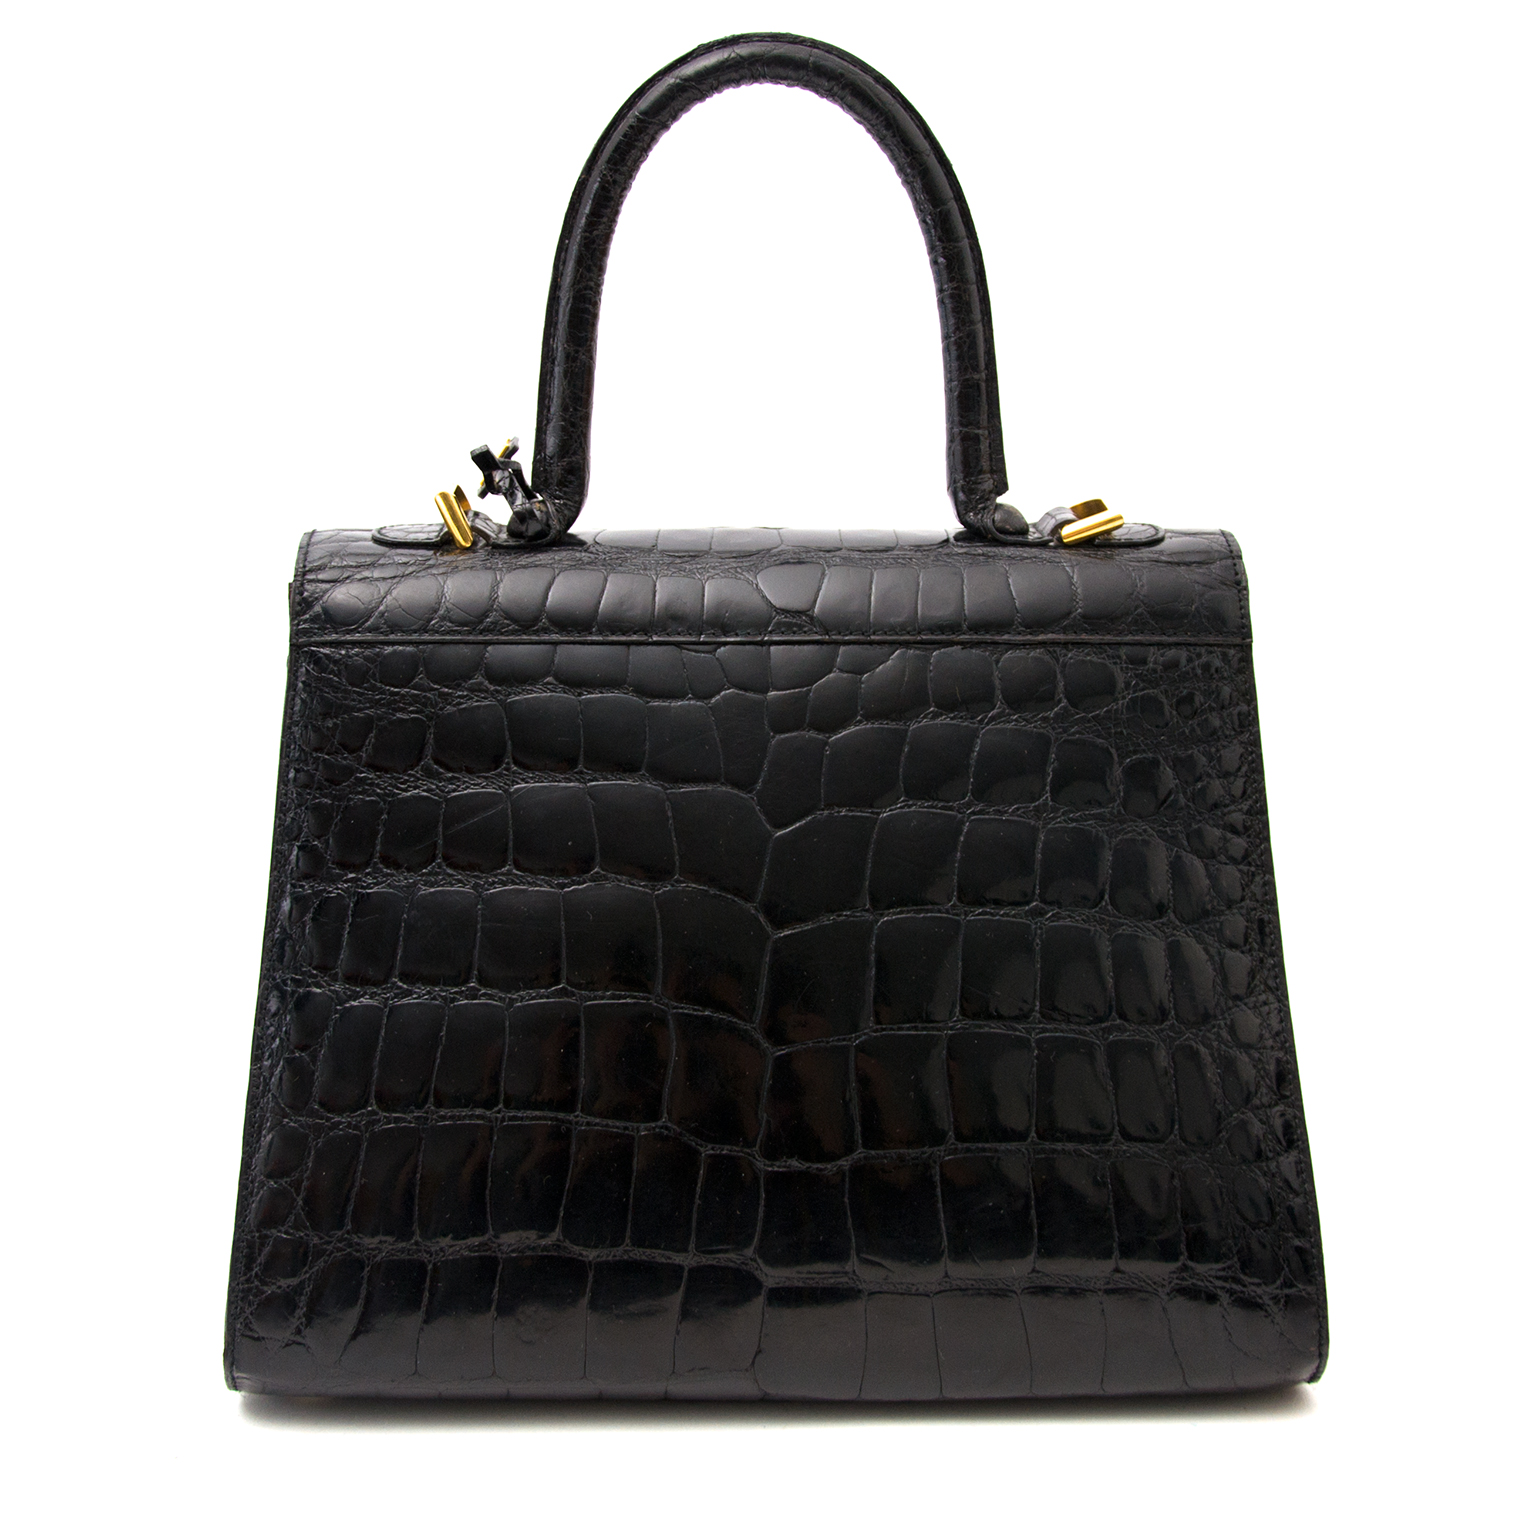 Buy and sell your preloved designer bags for the best rates online at Labellov luxury